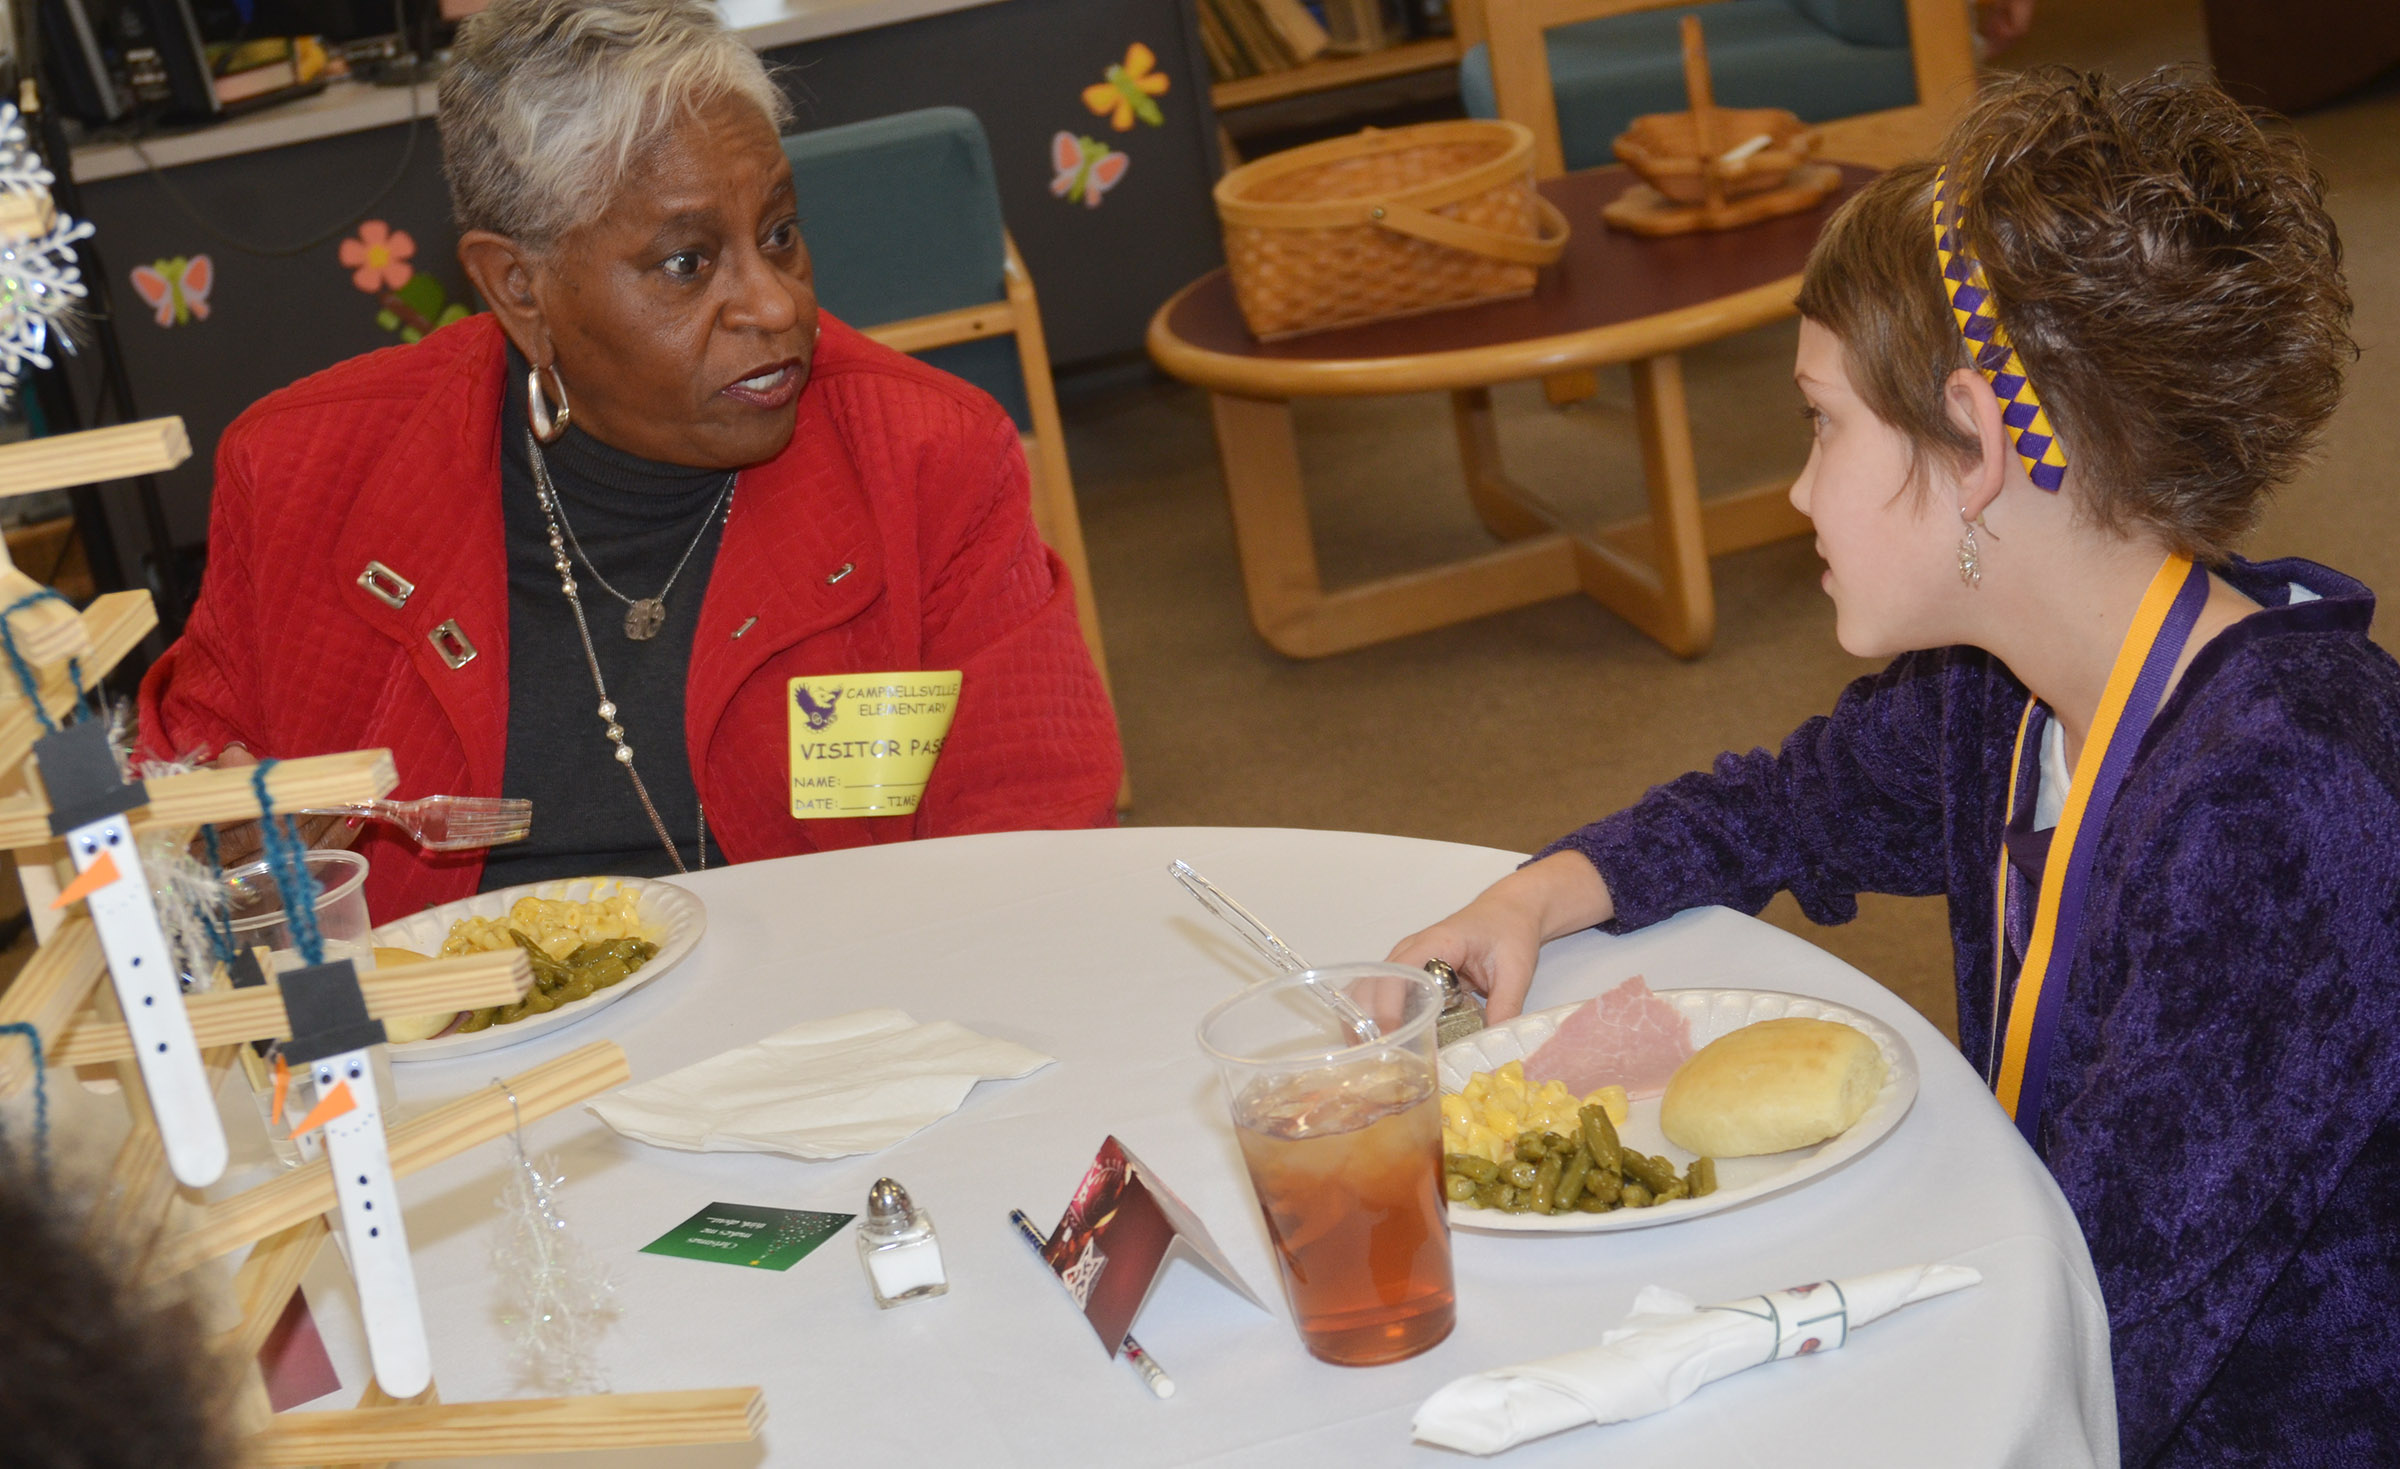 Yvette Haskins, a community leader, has lunch with CES second-grader Baylee Pike.